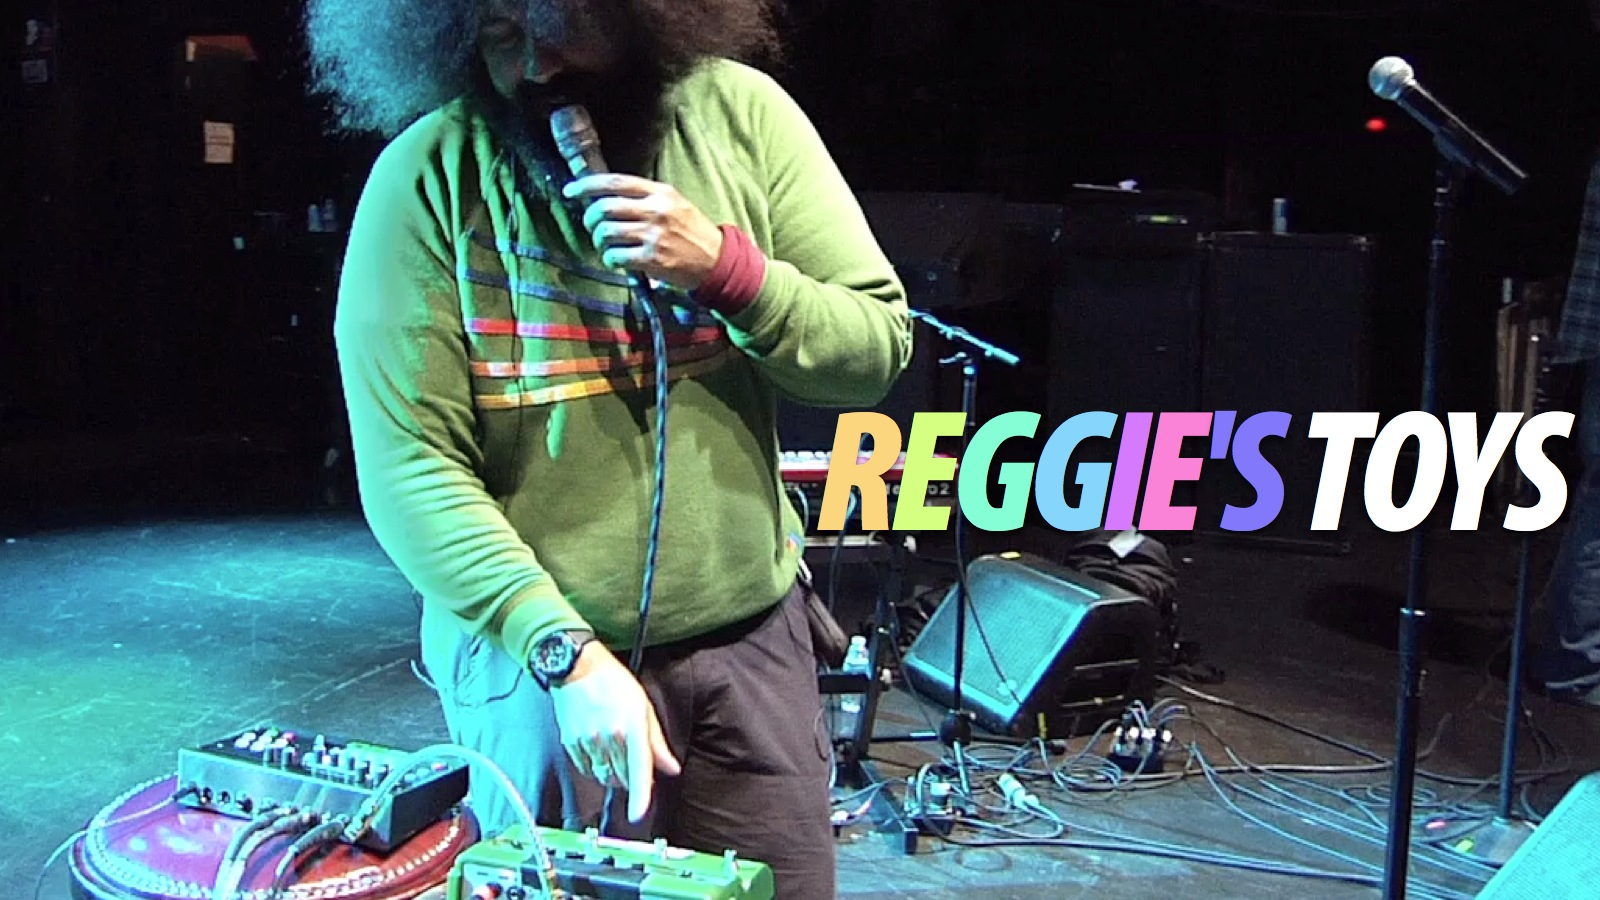 Click here to read The Gadgets of Music Genius Reggie Watts